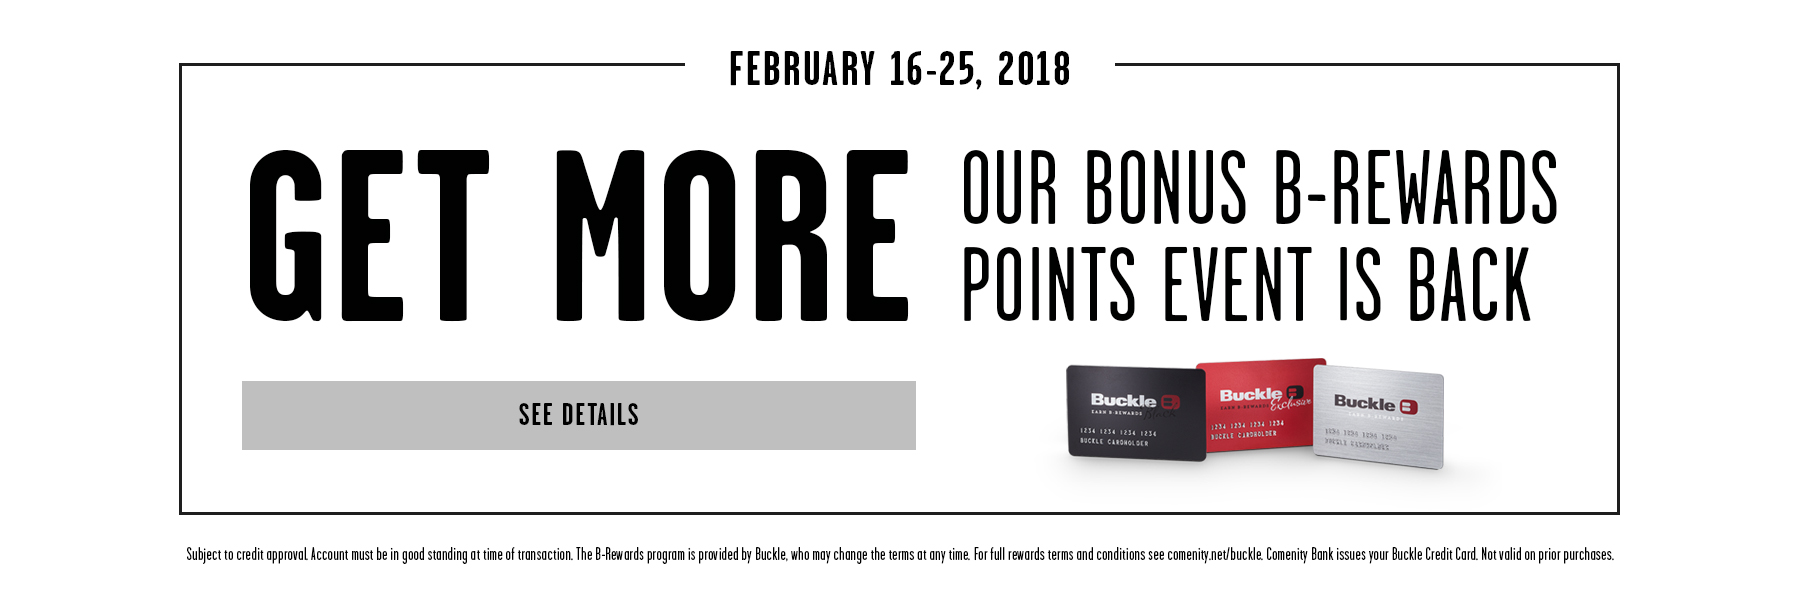 February 16-25, 2018 - Get More Our Bonus B-Rewards Points Event is Back